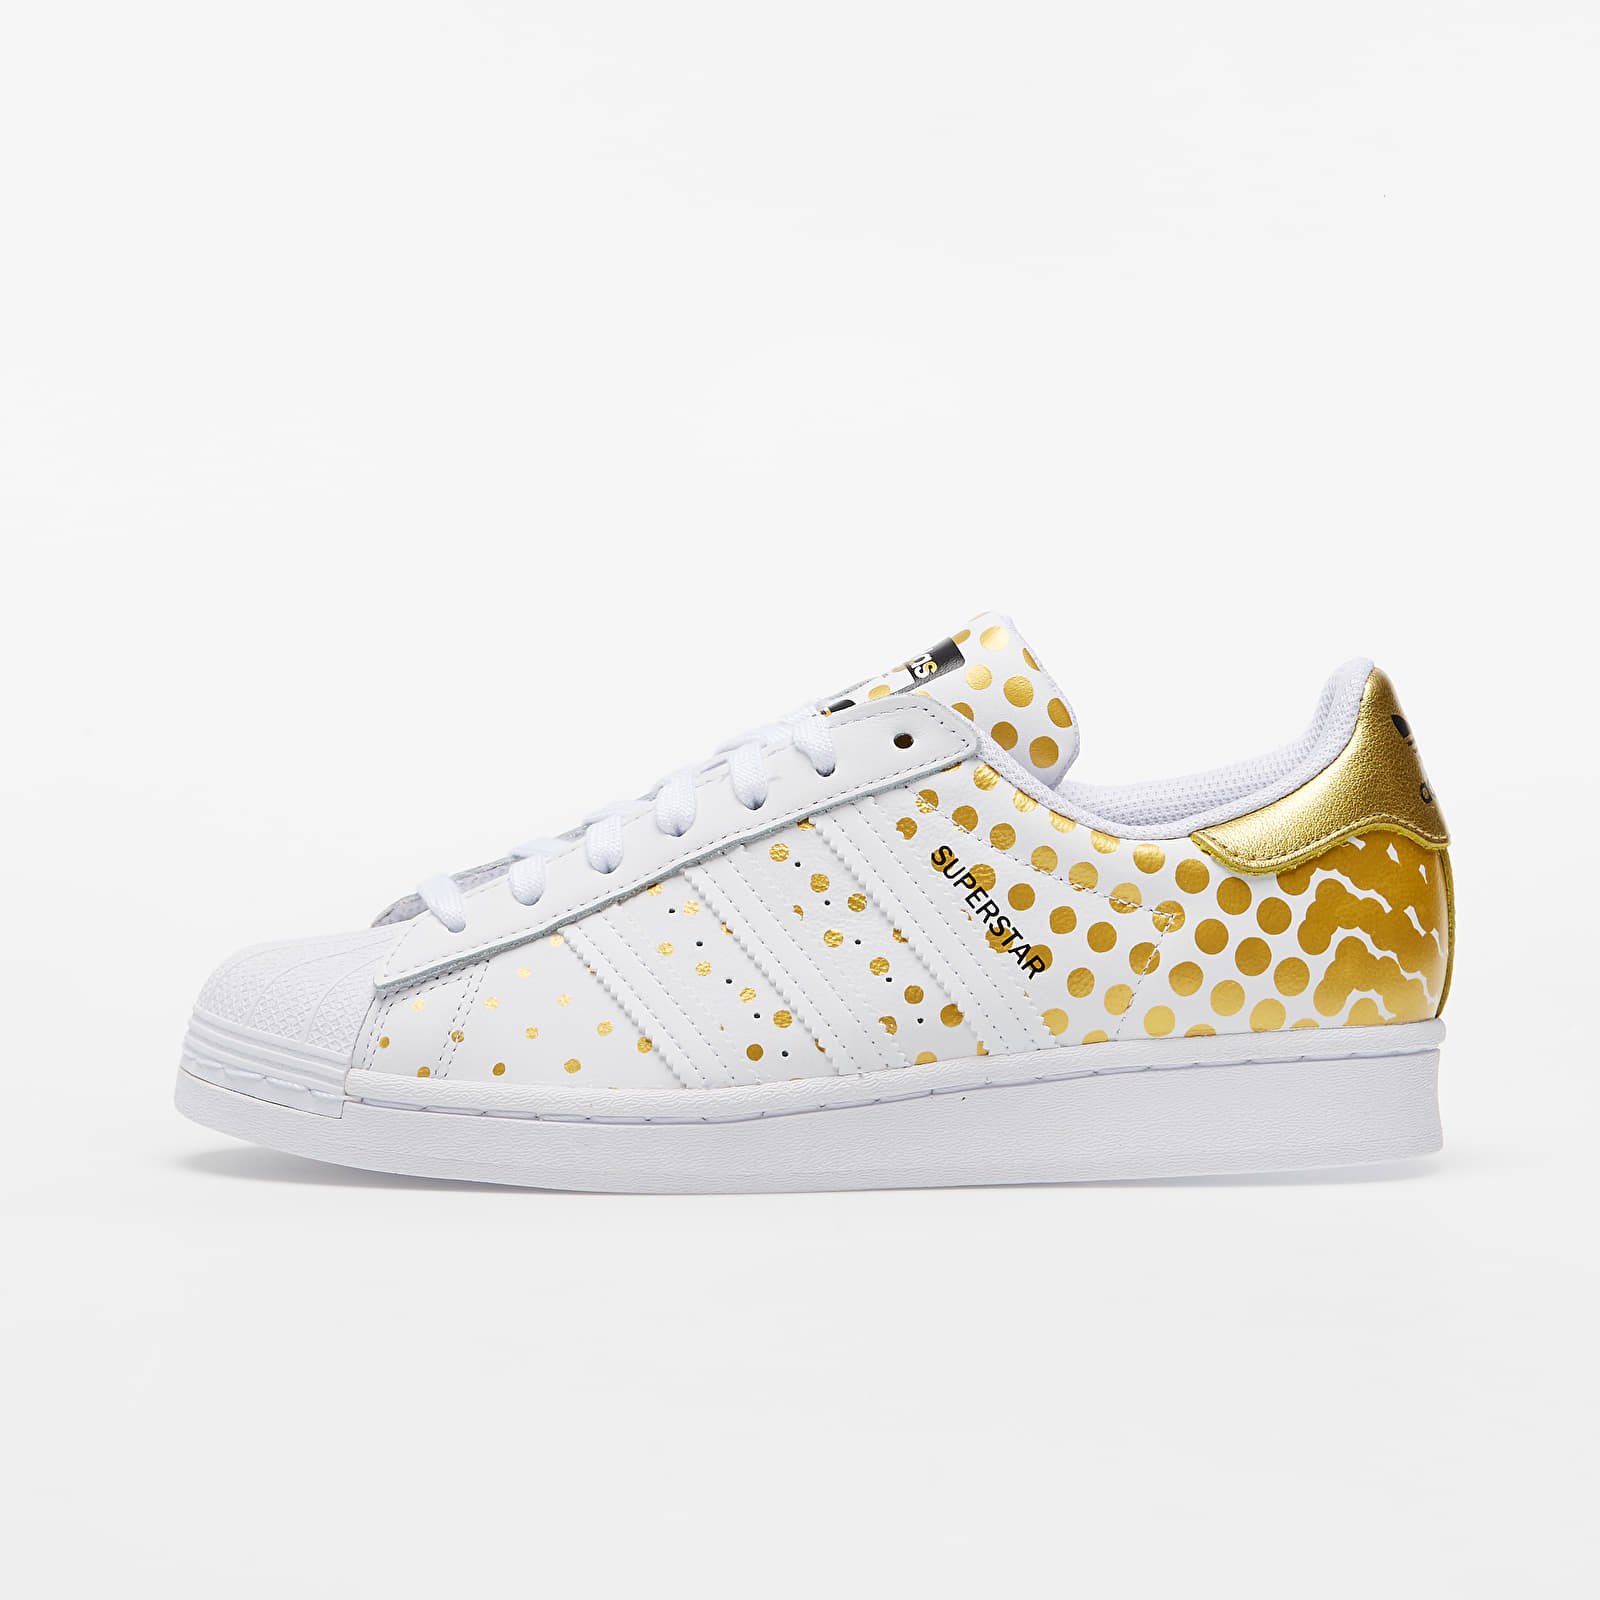 adidas Superstar W Gold Metalic/ Ftw White/ Core Black EUR 38